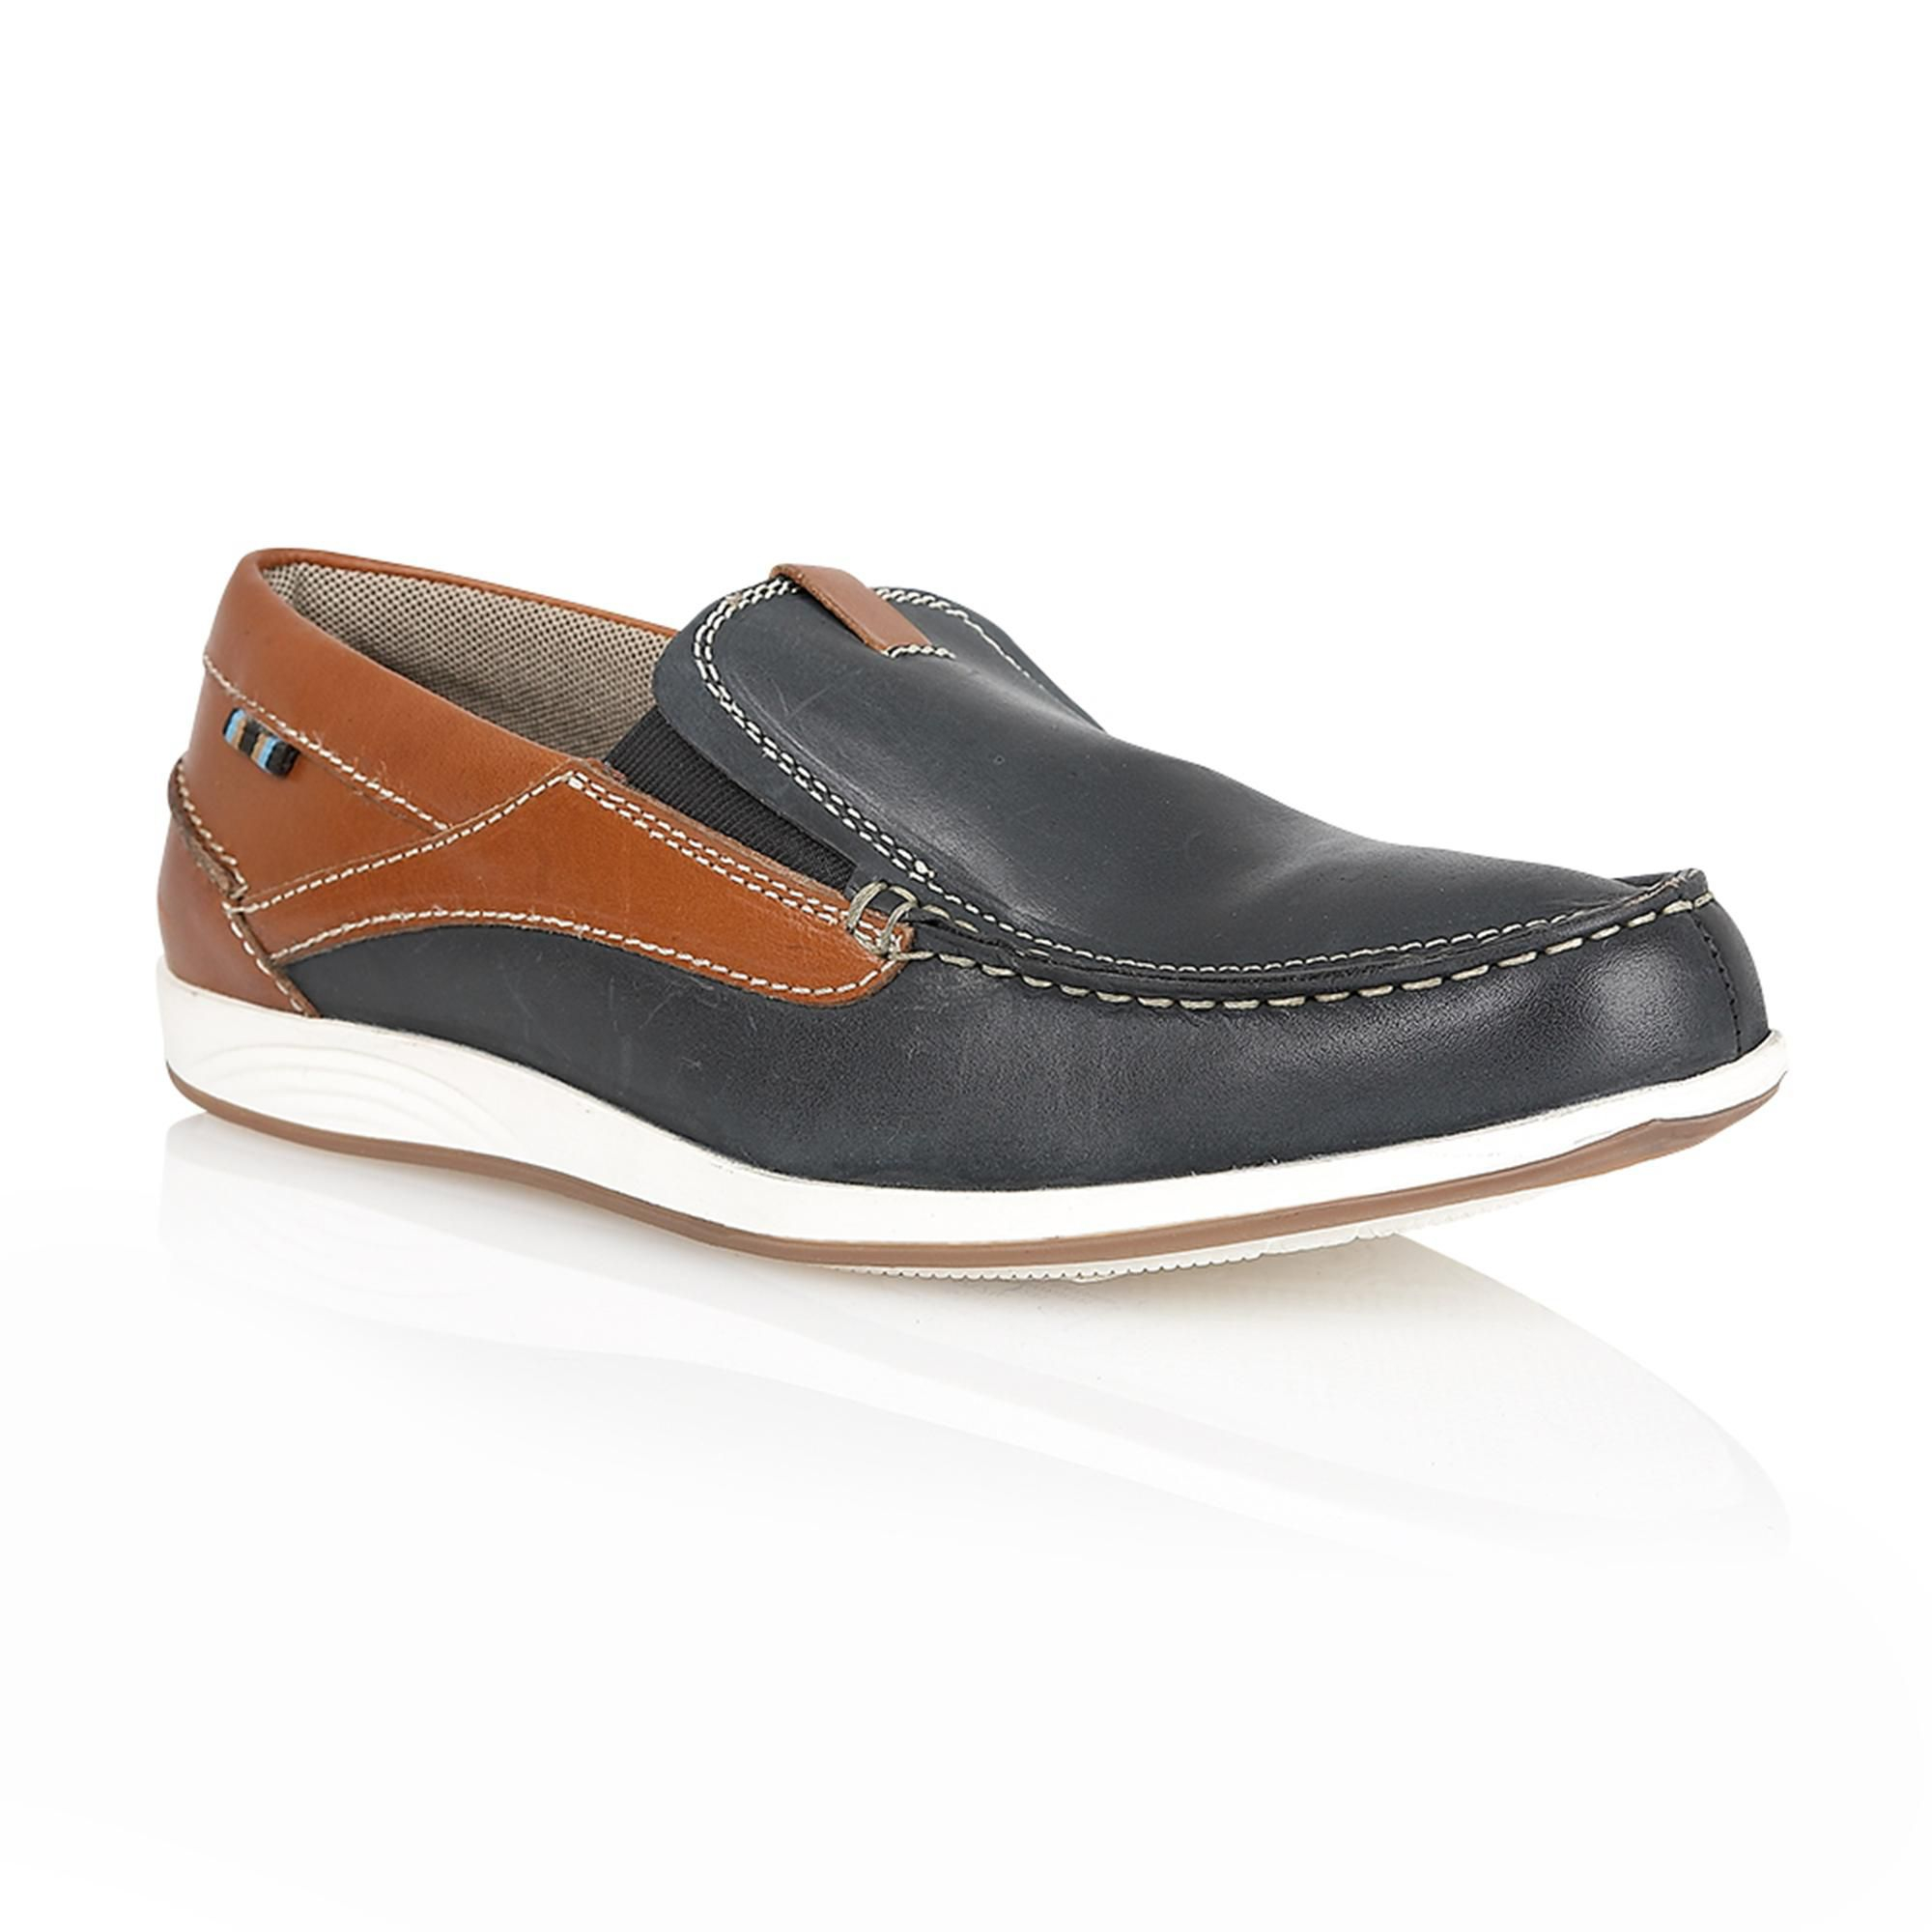 Free shipping BOTH ways on Boat Shoes, Men, from our vast selection of styles. Fast delivery, and 24/7/ real-person service with a smile. Click or call